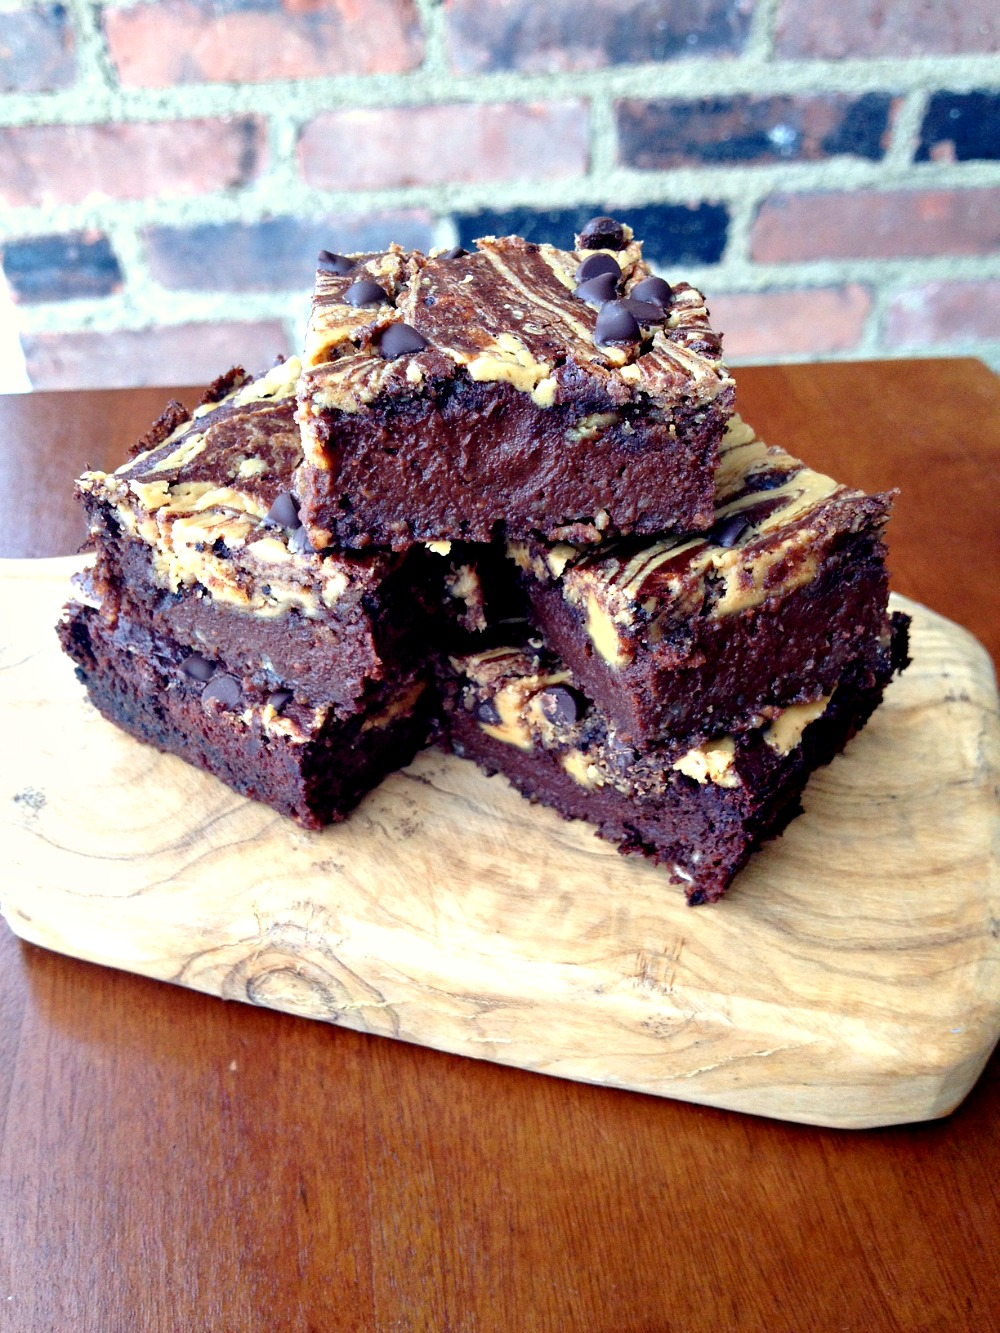 Chocolate Peanut Butter Swirl Brownie